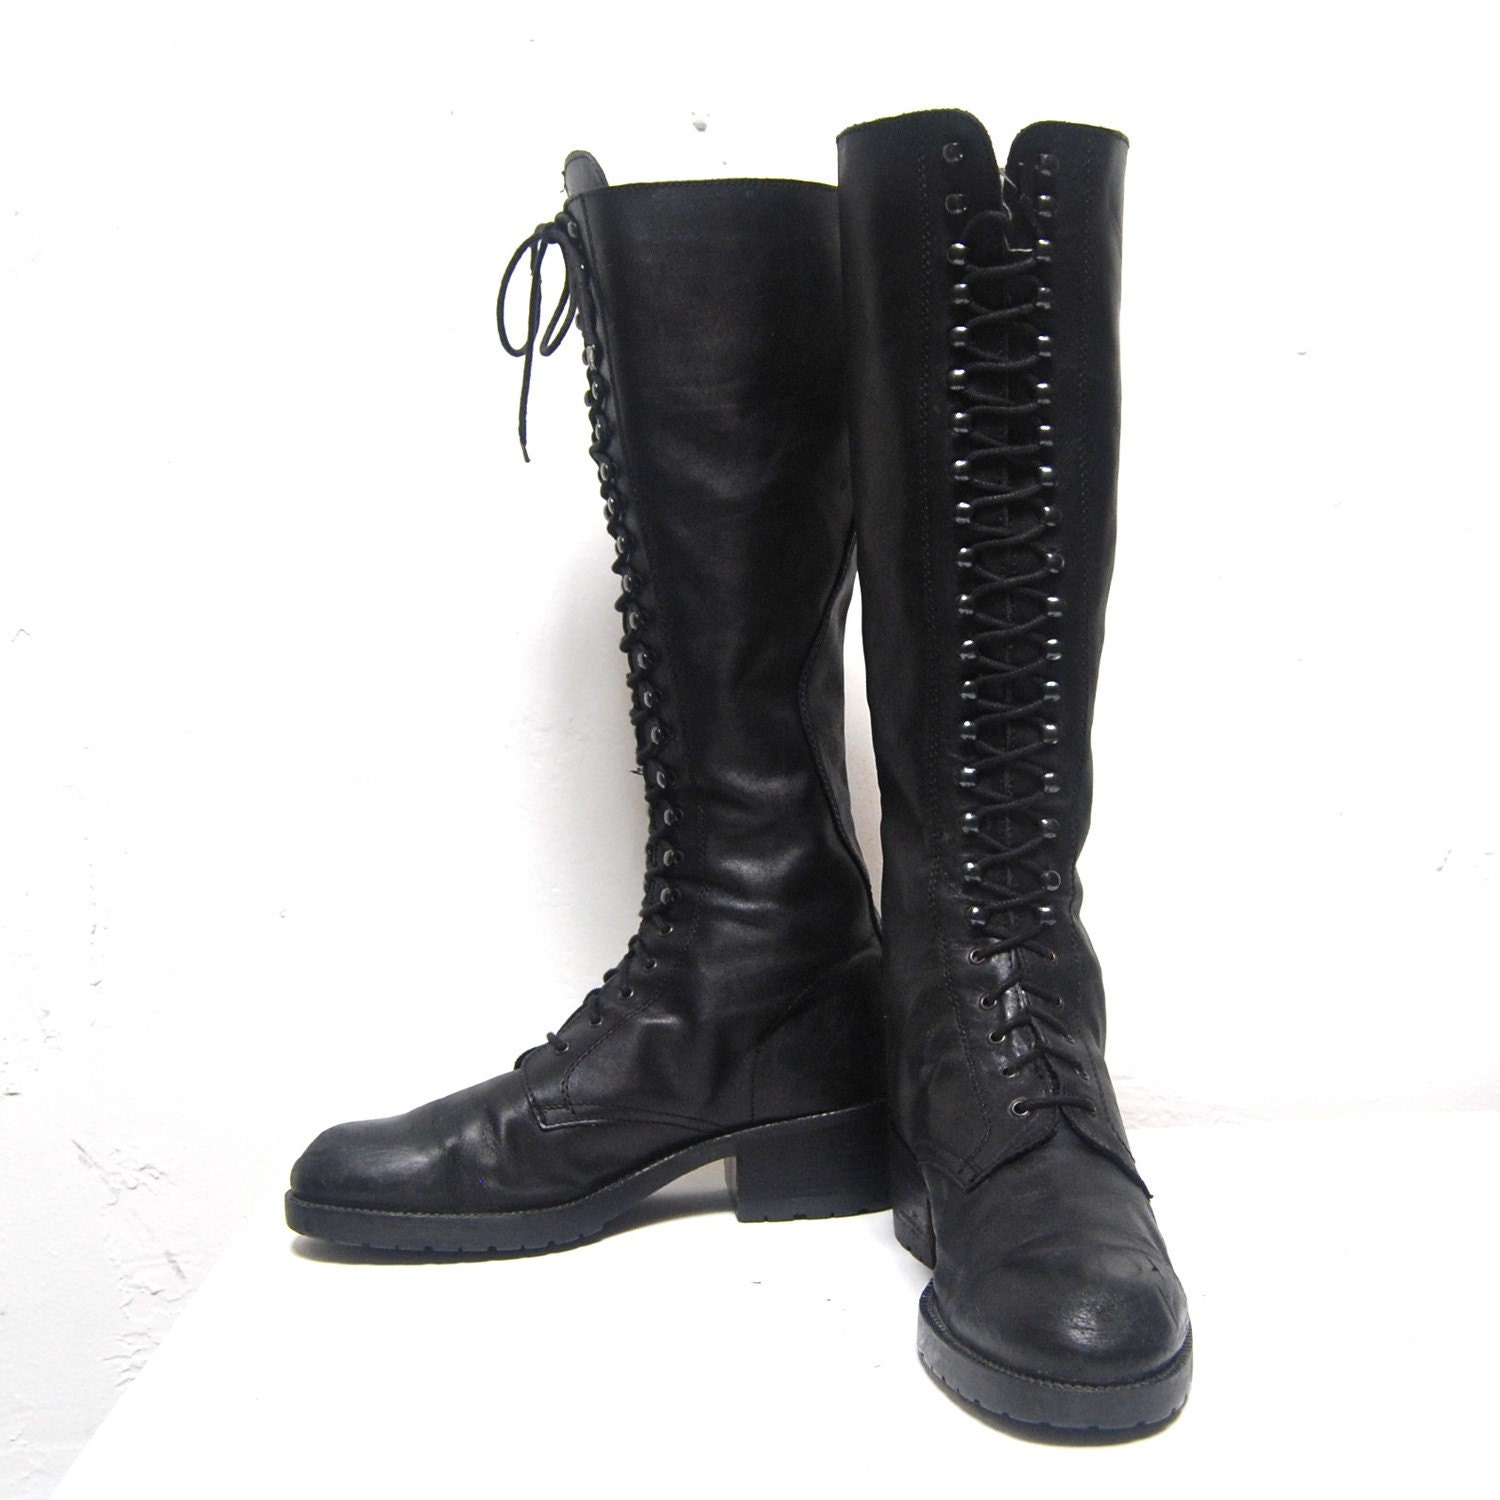 grunge 90s knee high lace up combat boots size 9 5